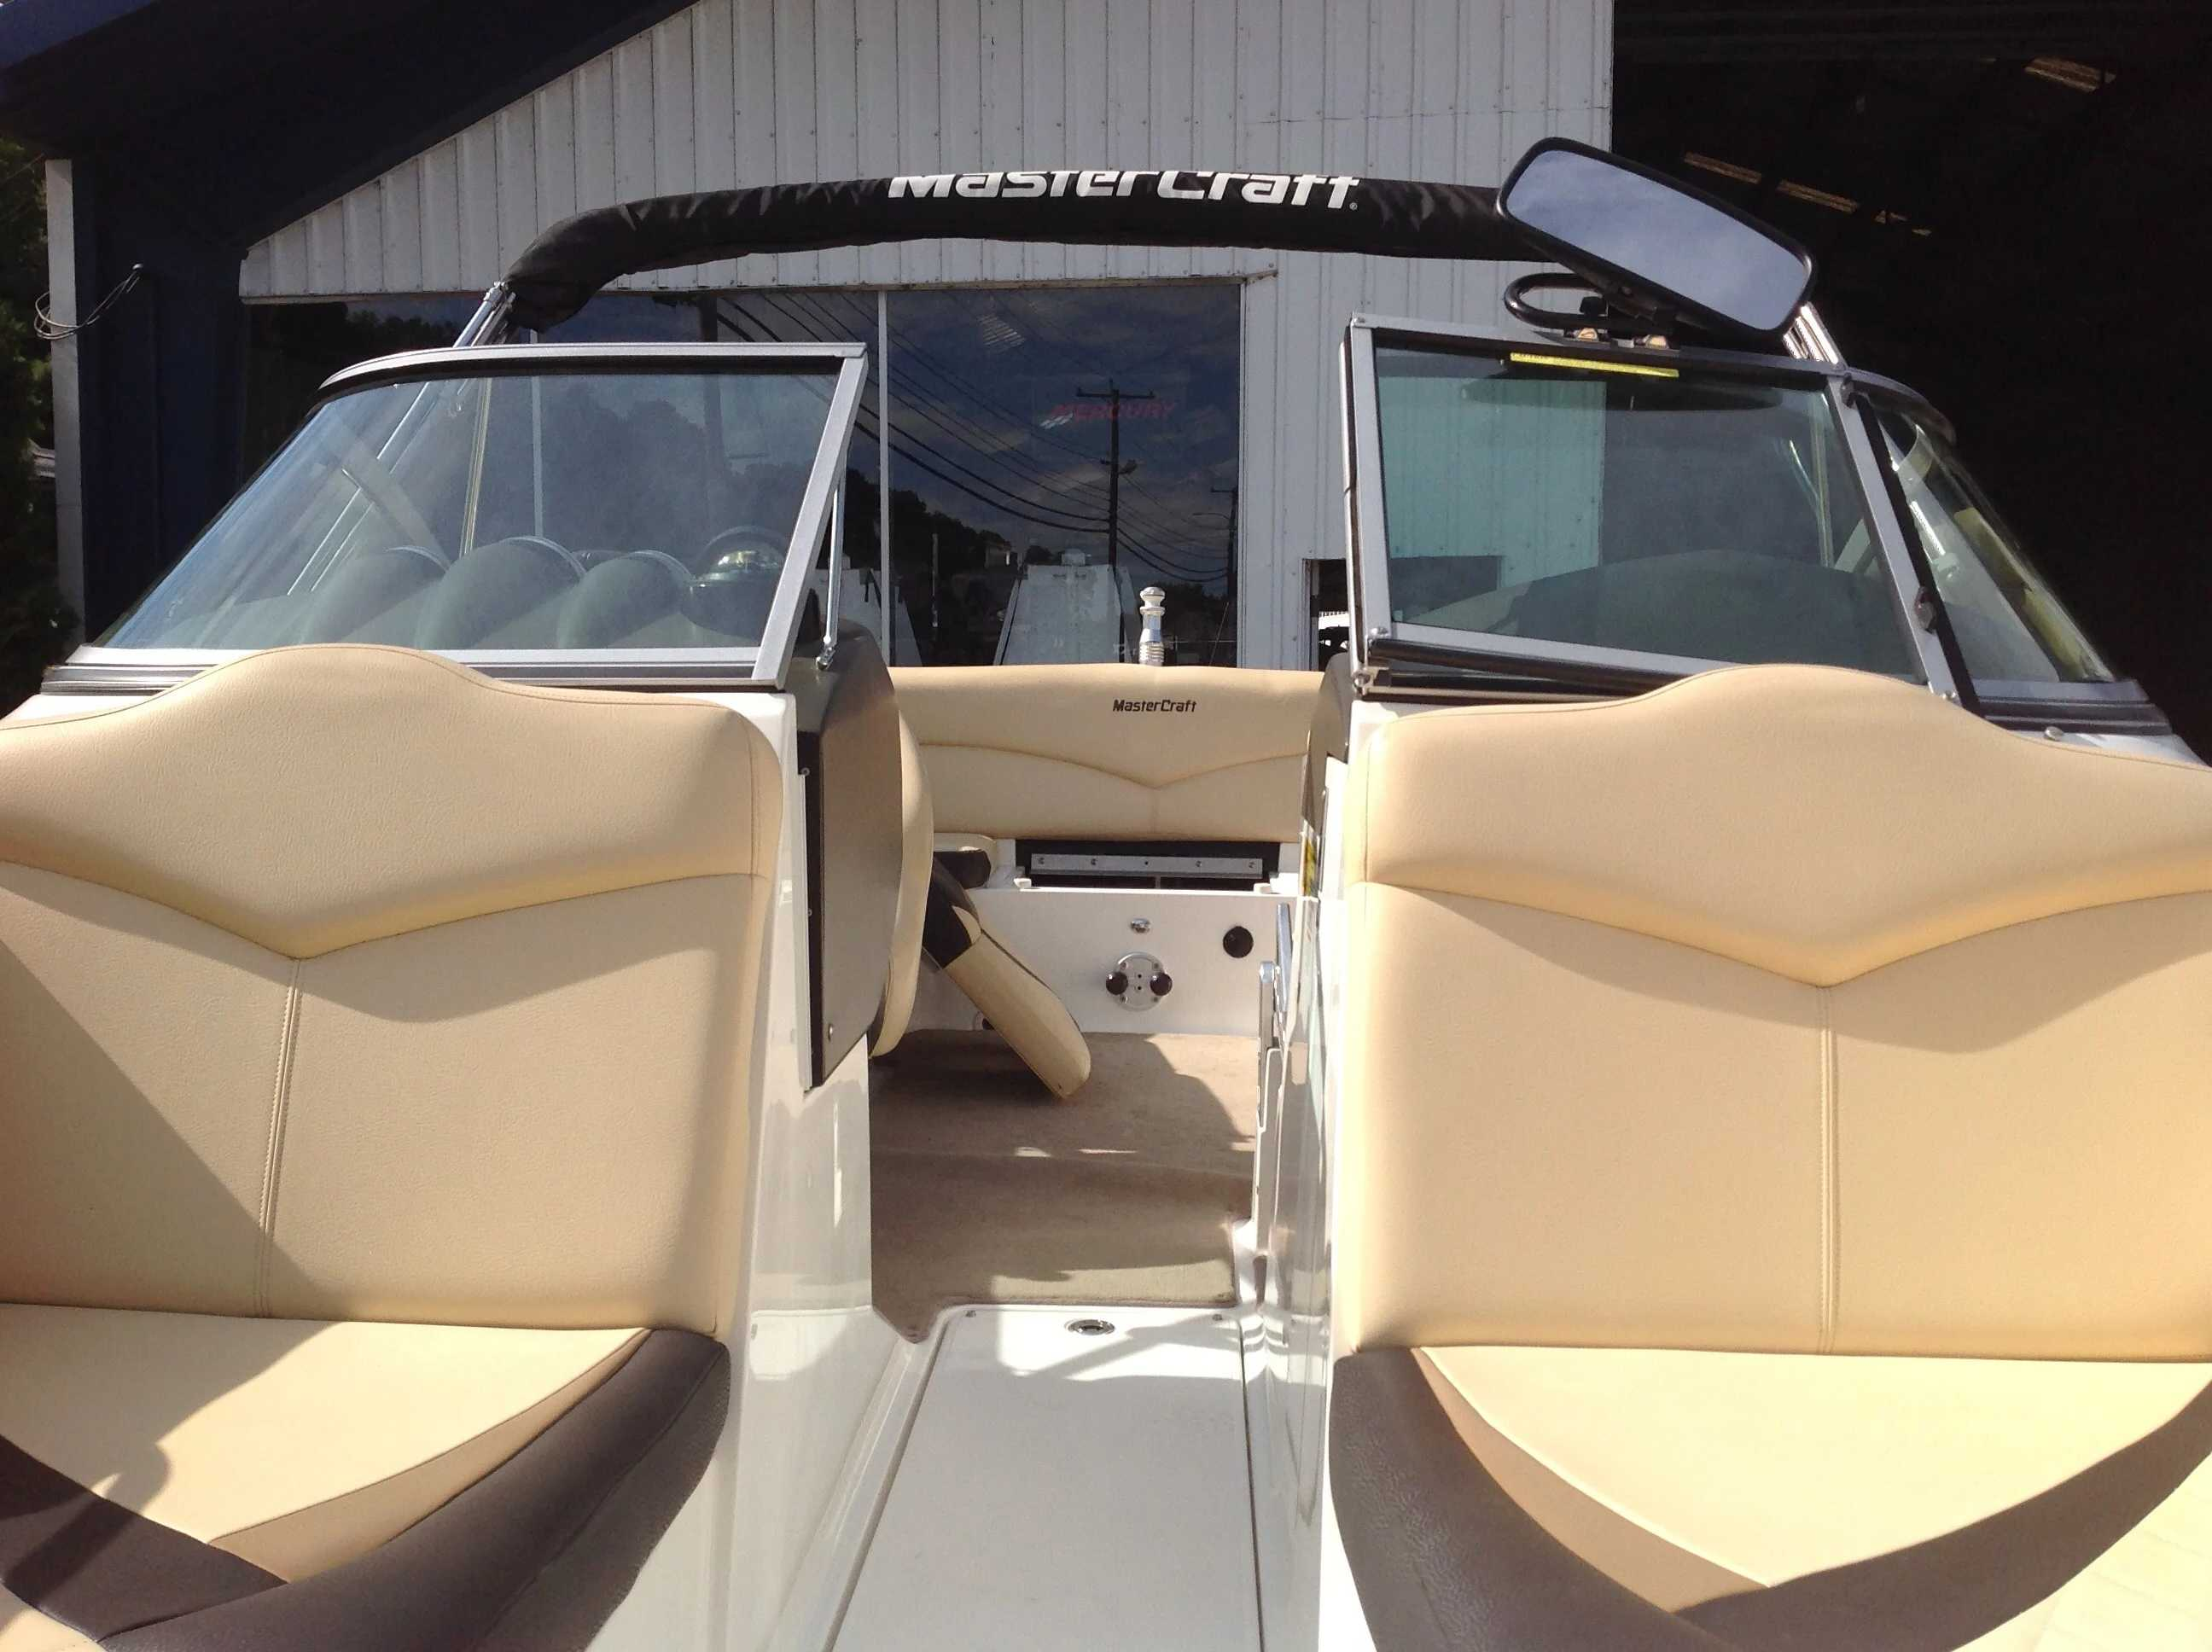 2010 Mastercraft boat for sale, model of the boat is Maristar 235 & Image # 5 of 16